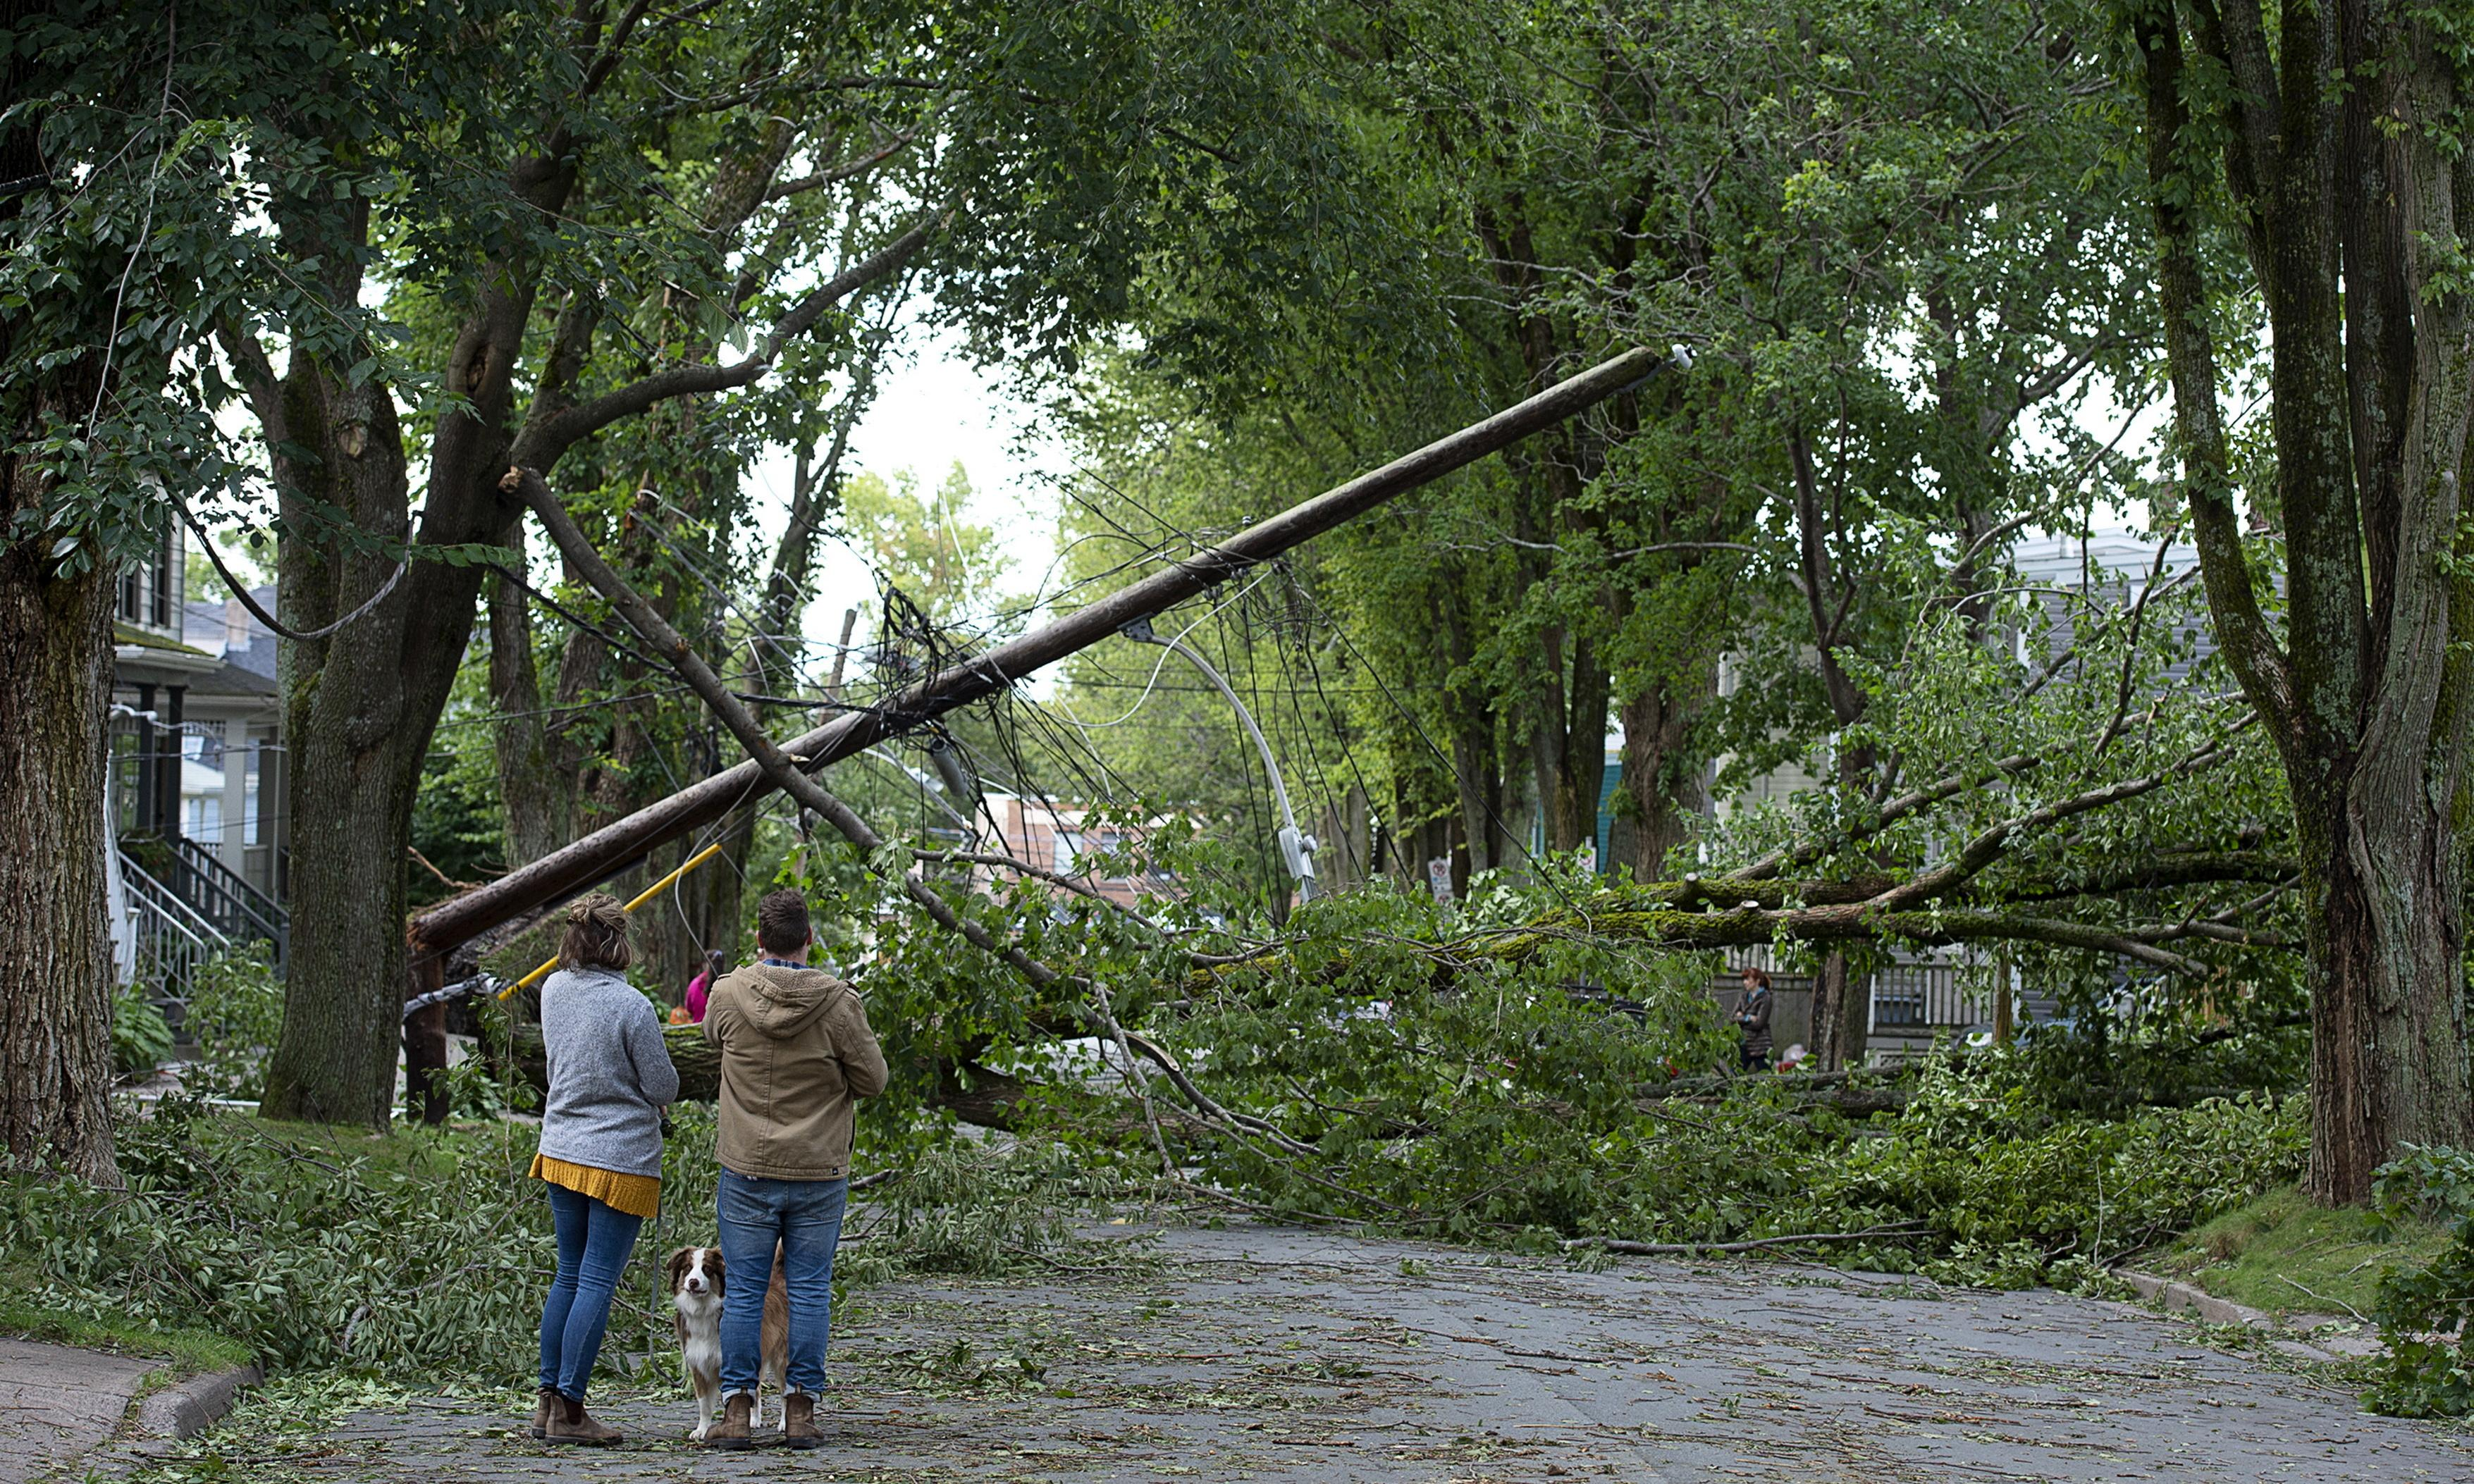 Canada: Hurricane Dorian's sting in the tail leaves 500,000 without power